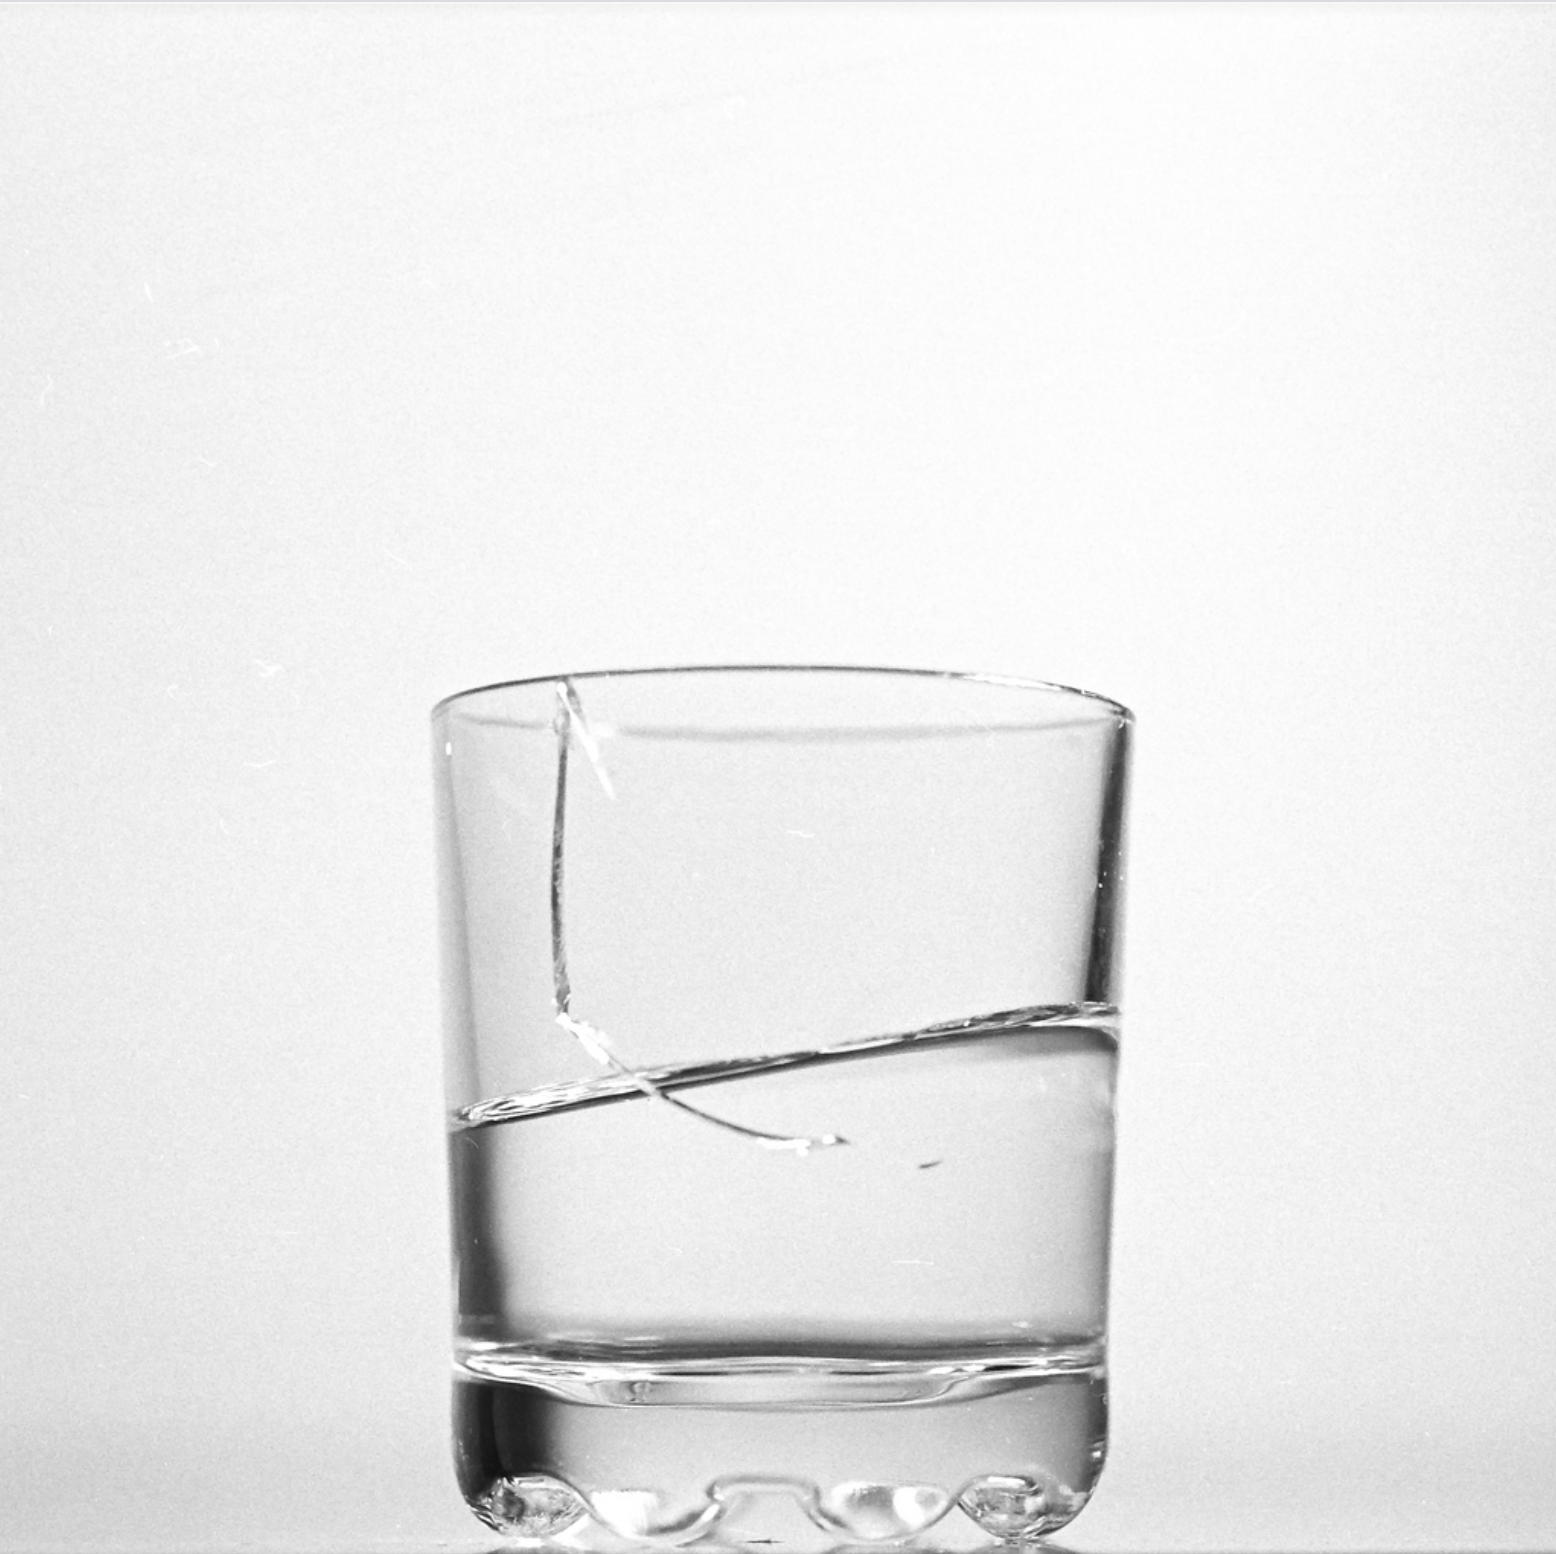 A white background with a glass cup. The cup is filled with water and has a small crack in it.